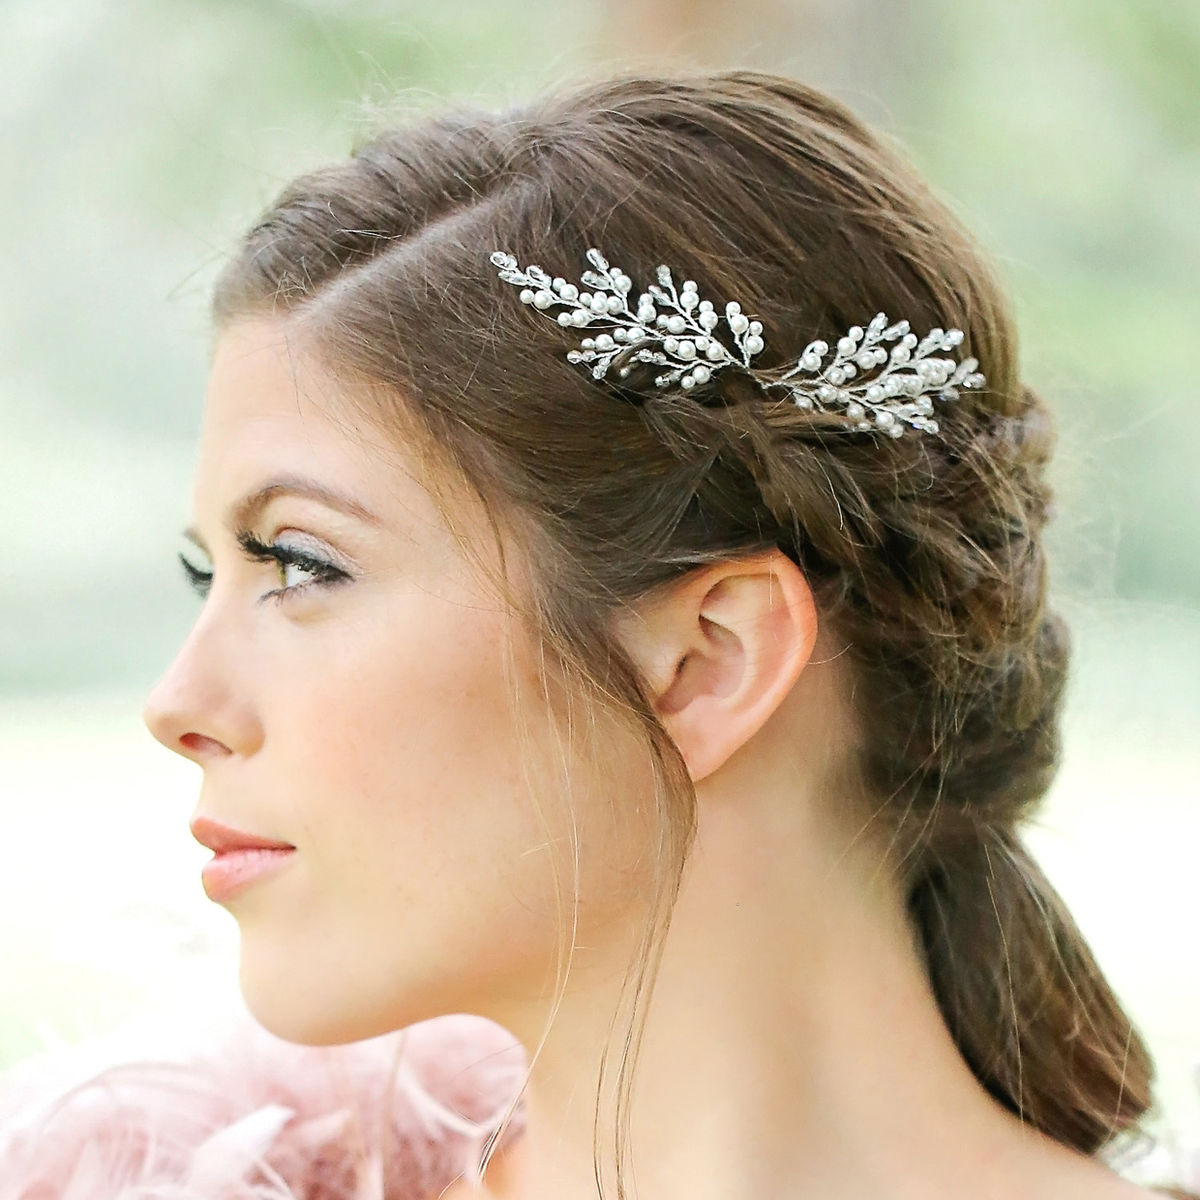 Indian Summer Hairpin - product images  of